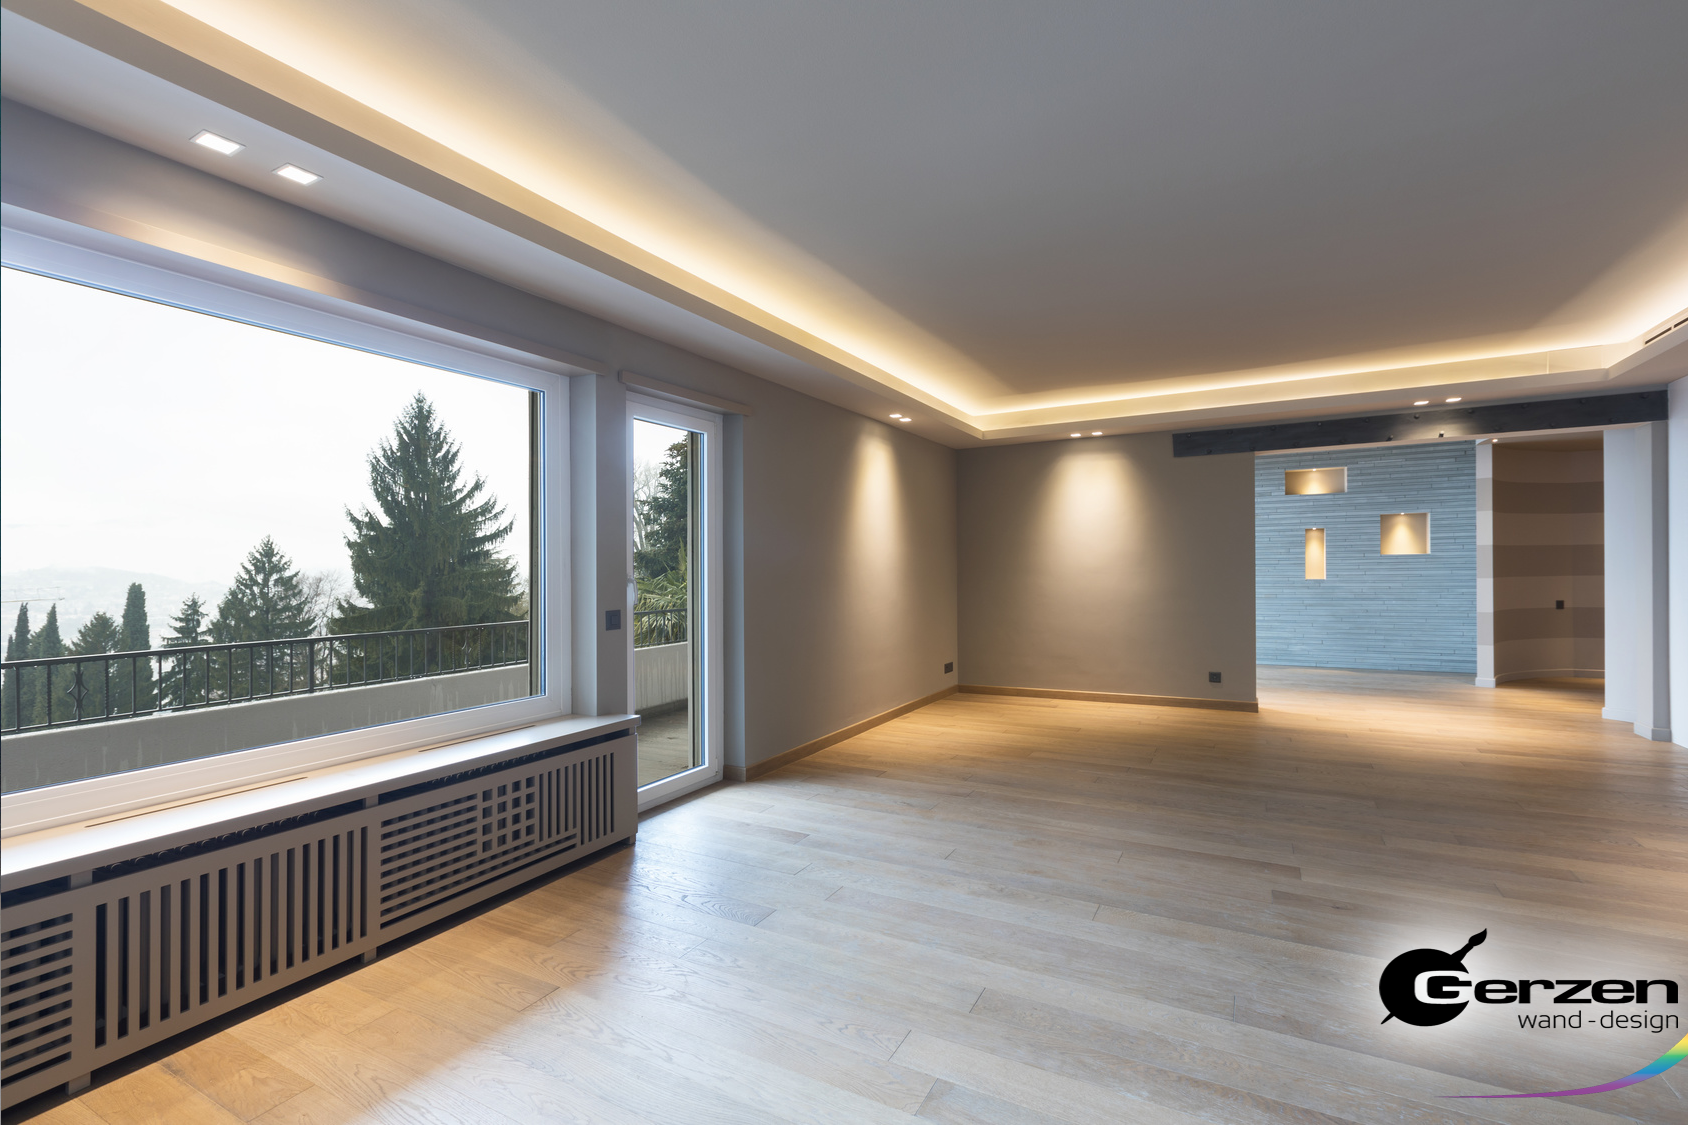 Suspended ceiling in a modern living room wall niches with indirect lighting ceiling